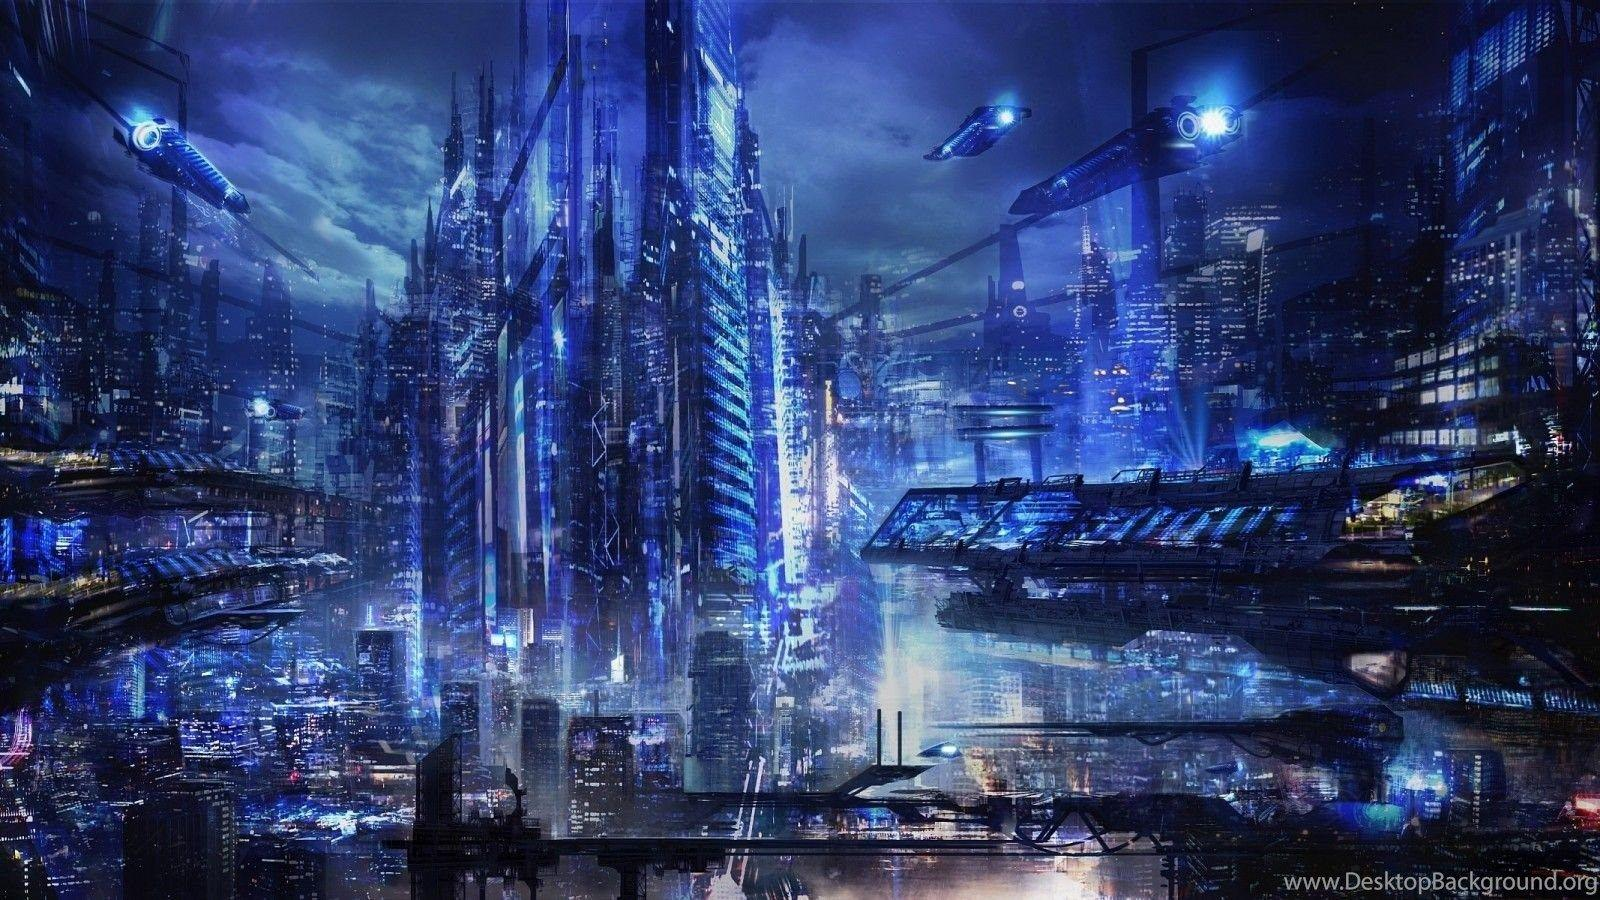 Download Blue Sci Fi Wallpapers 6809 1600x900 Px High Resolution